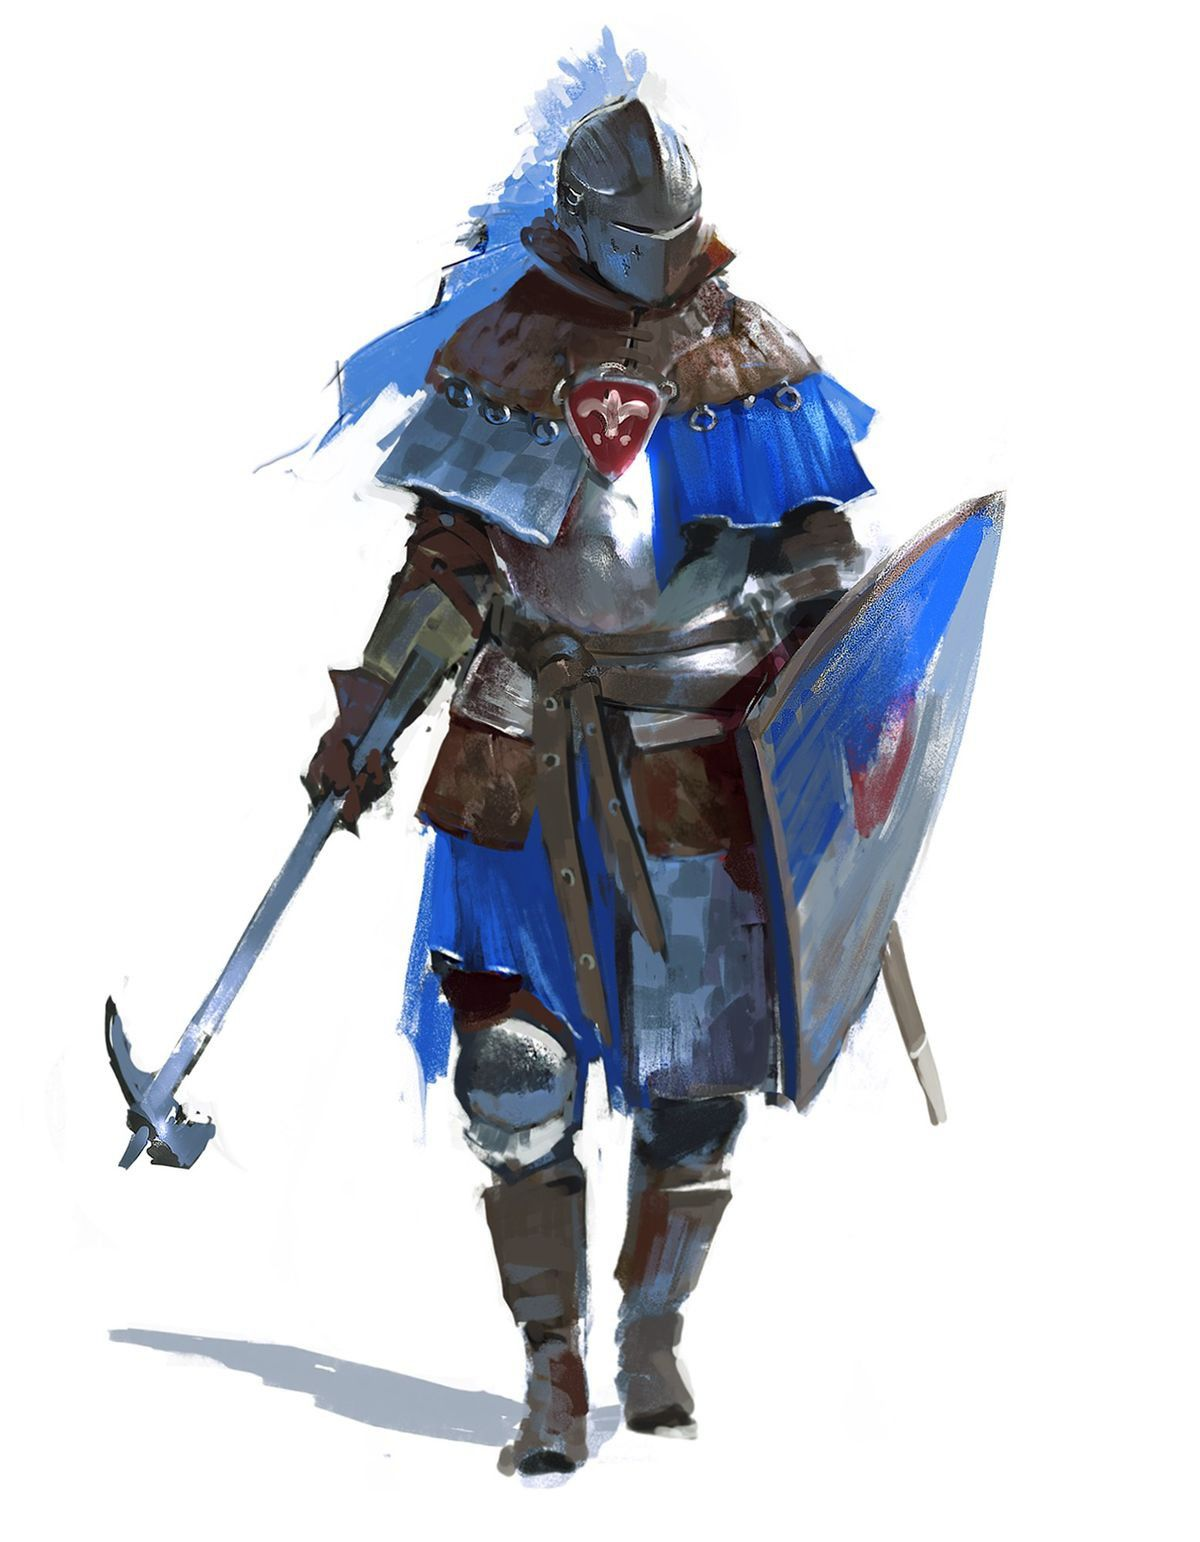 DnD Fighters/Paladins | Fantasy character design, Character art, Character design